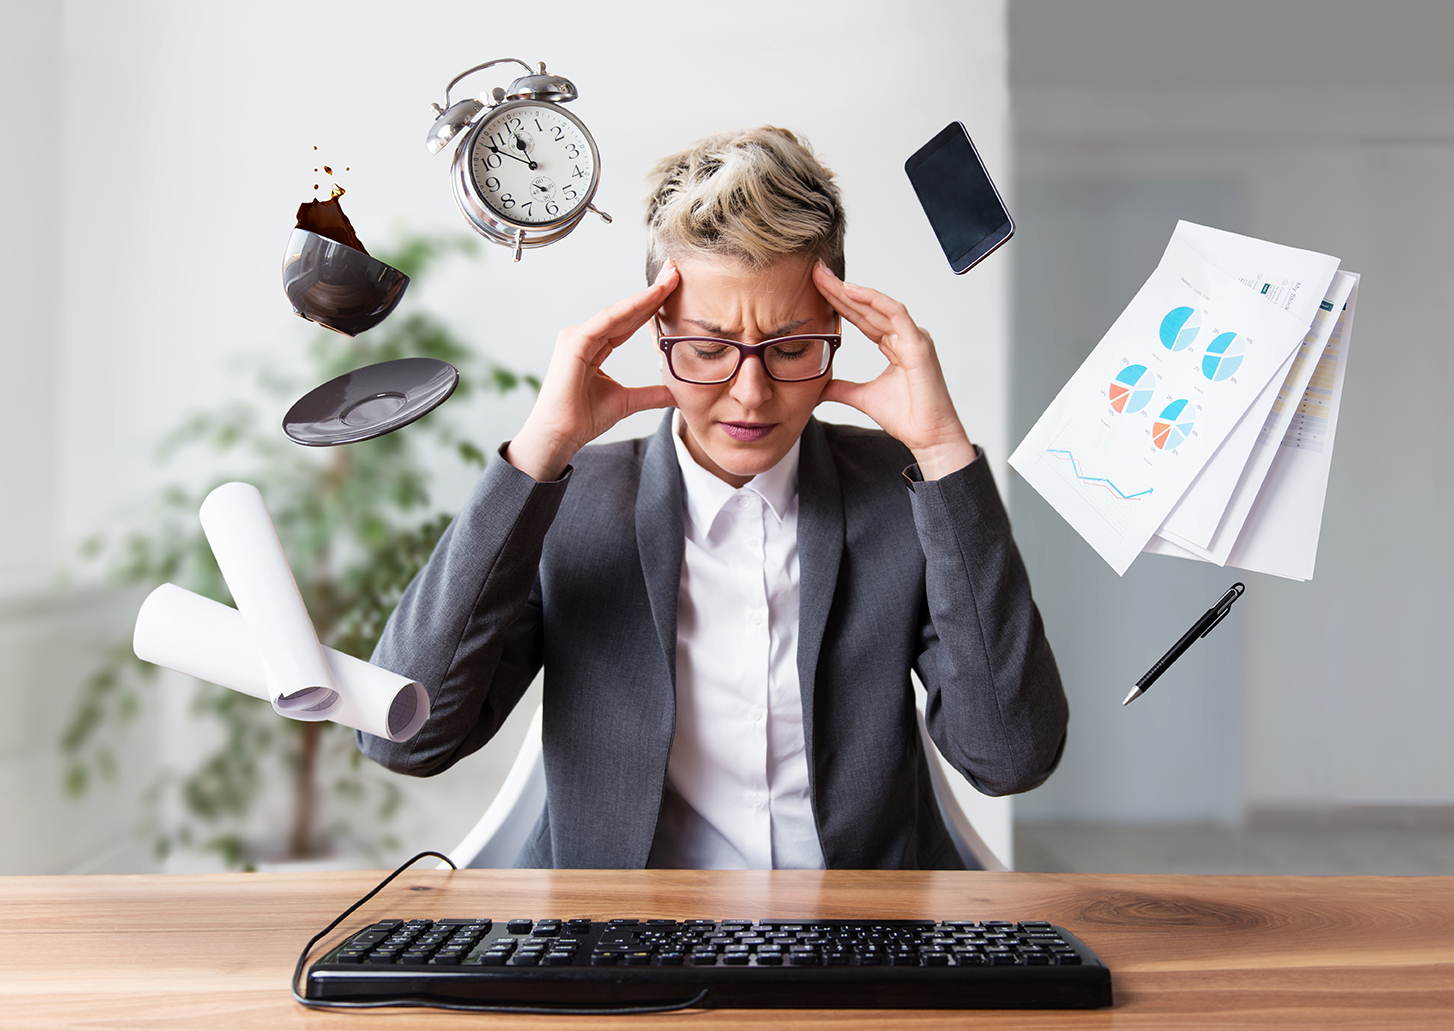 Mature women with pixie cut stressed out at work at her desk because she's trying to work and multi-tasking doesn't work